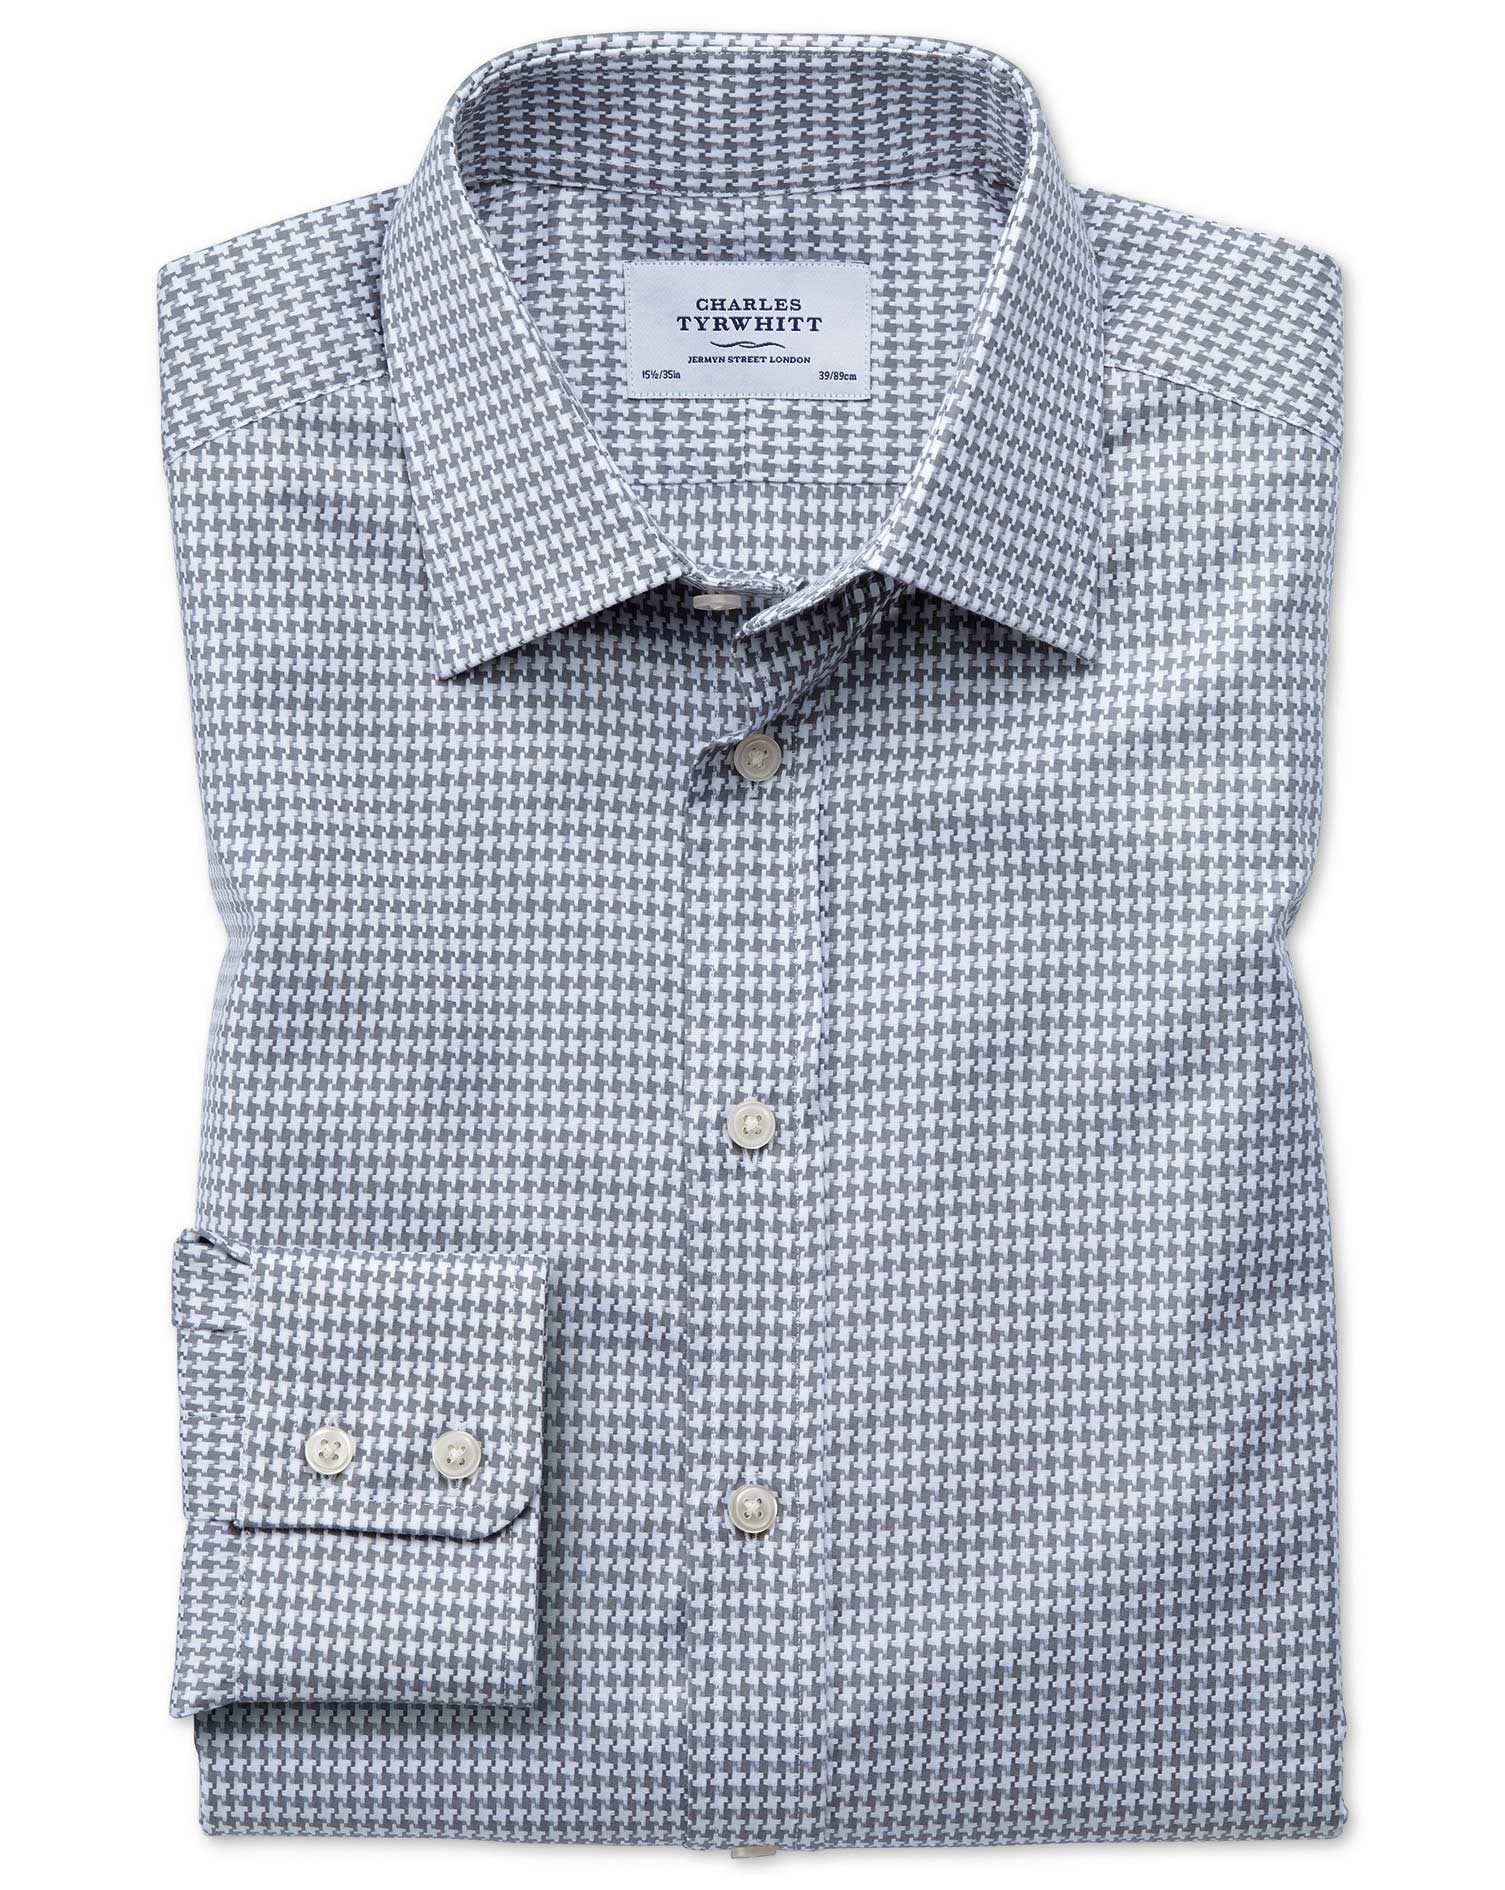 Slim Fit Large Puppytooth Light Grey Cotton Formal Shirt Single Cuff Size 15.5/33 by Charles Tyrwhit